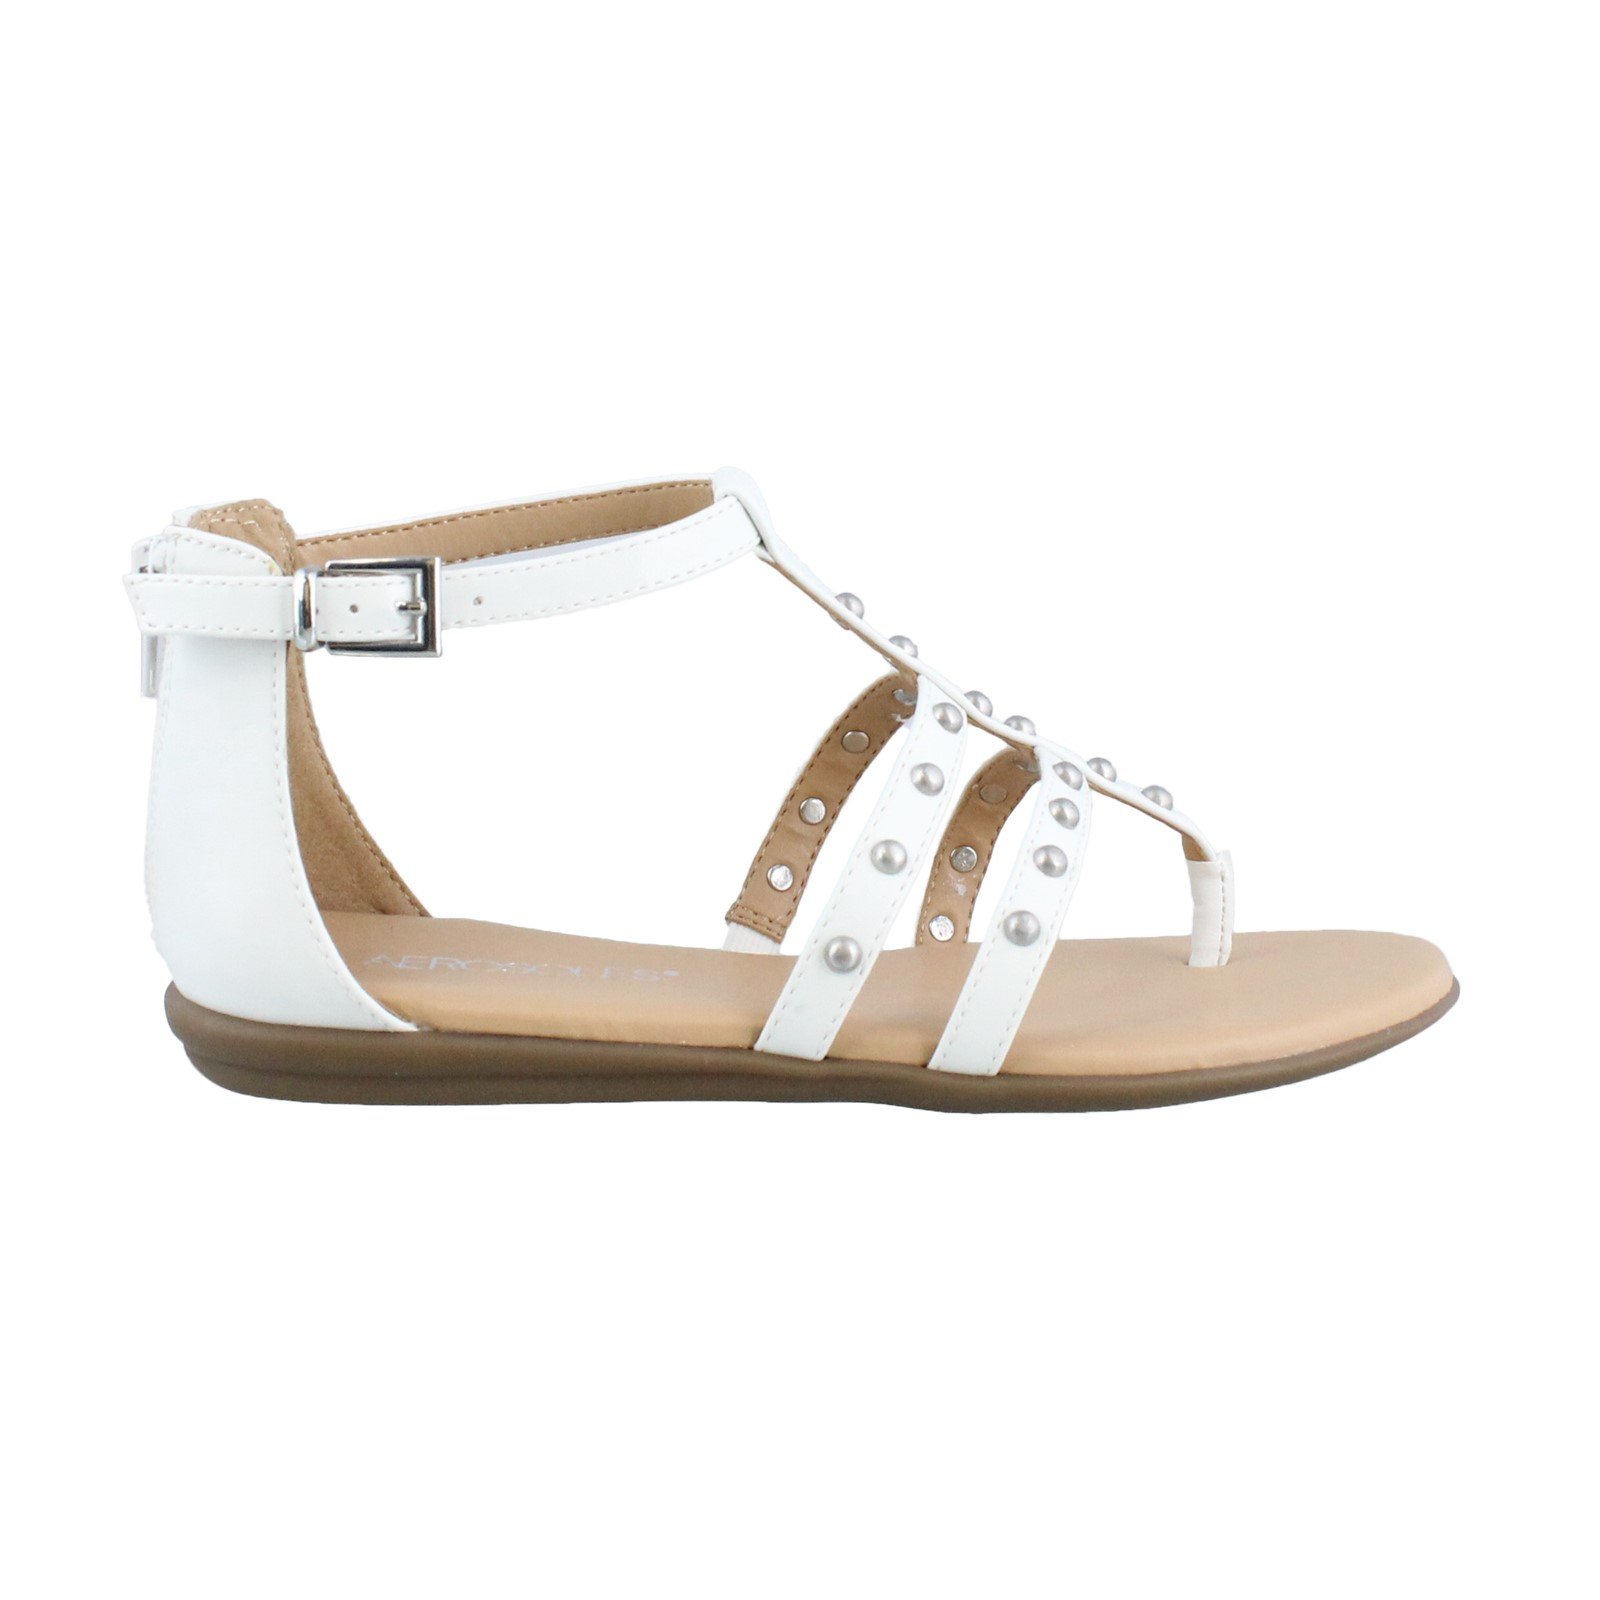 Women's Aerosoles, Social Chlub Gladiator Sandals